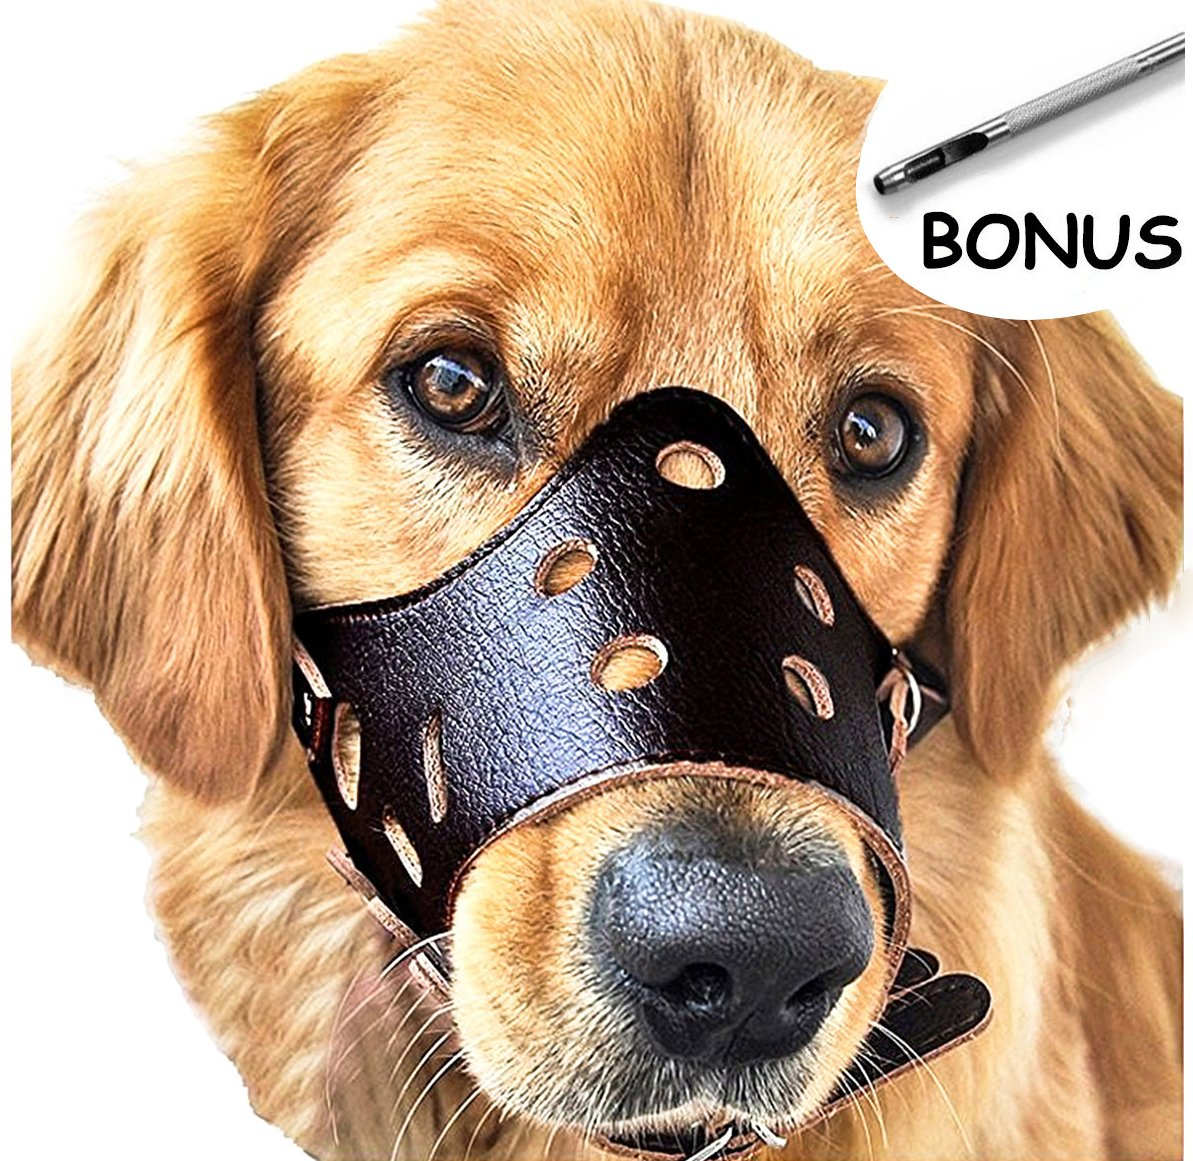 Adjustable Leather Dog Muzzles, Lightweight Durable, for Anti-biting Anti-barking Anti-chewing Safety Protection (M, Black)